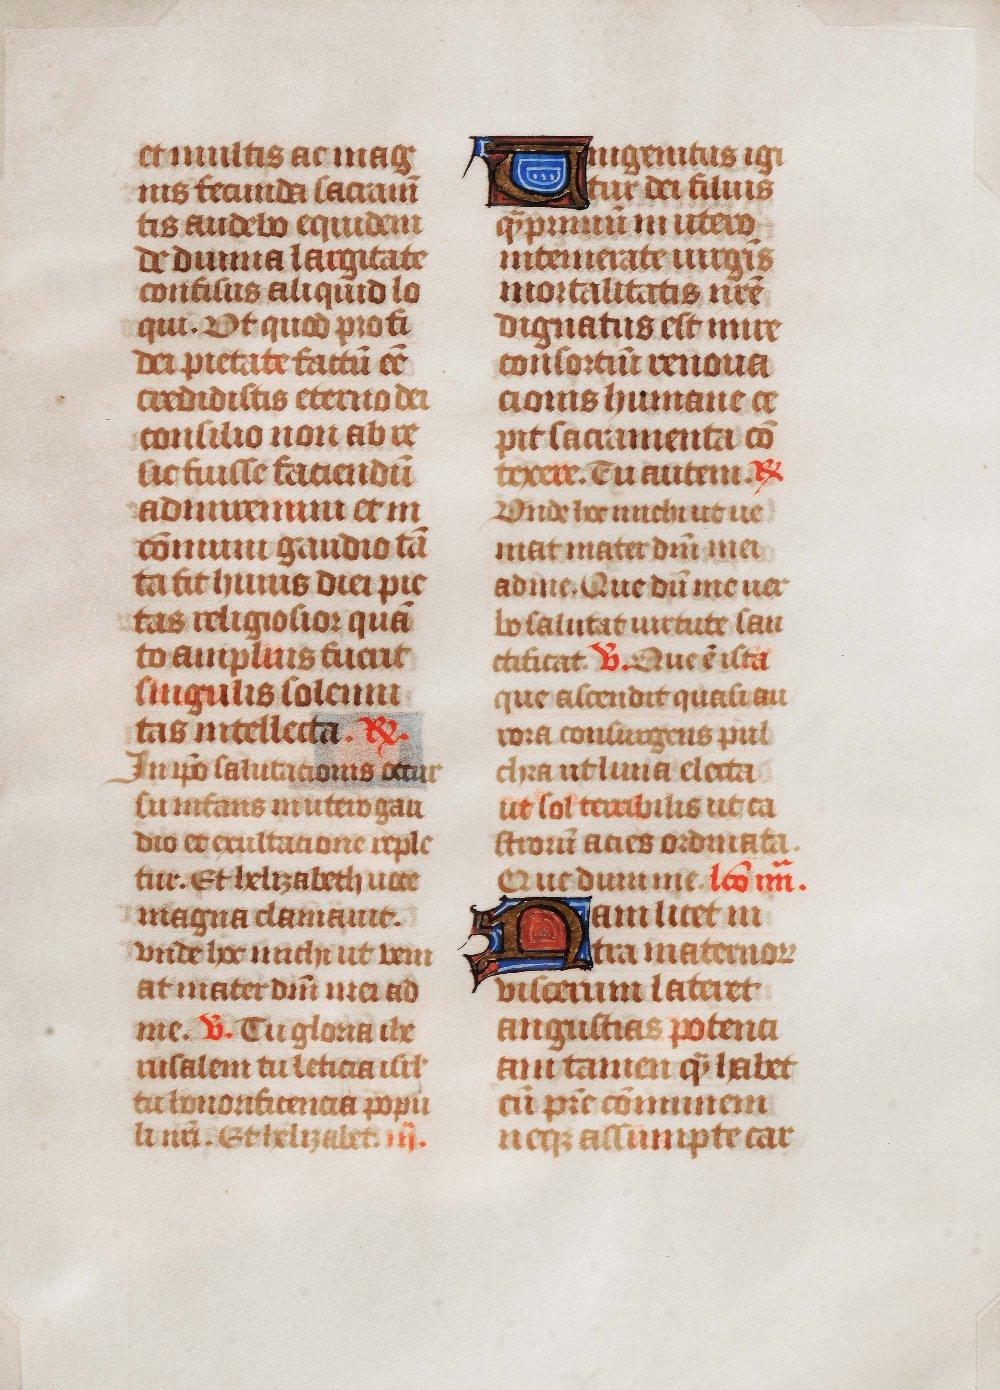 Lot 328 - AN OLD ILLUMINATED MANUSCRIPT LEAF decorated with Latin text in gilt and colours, double-sided, 18 x